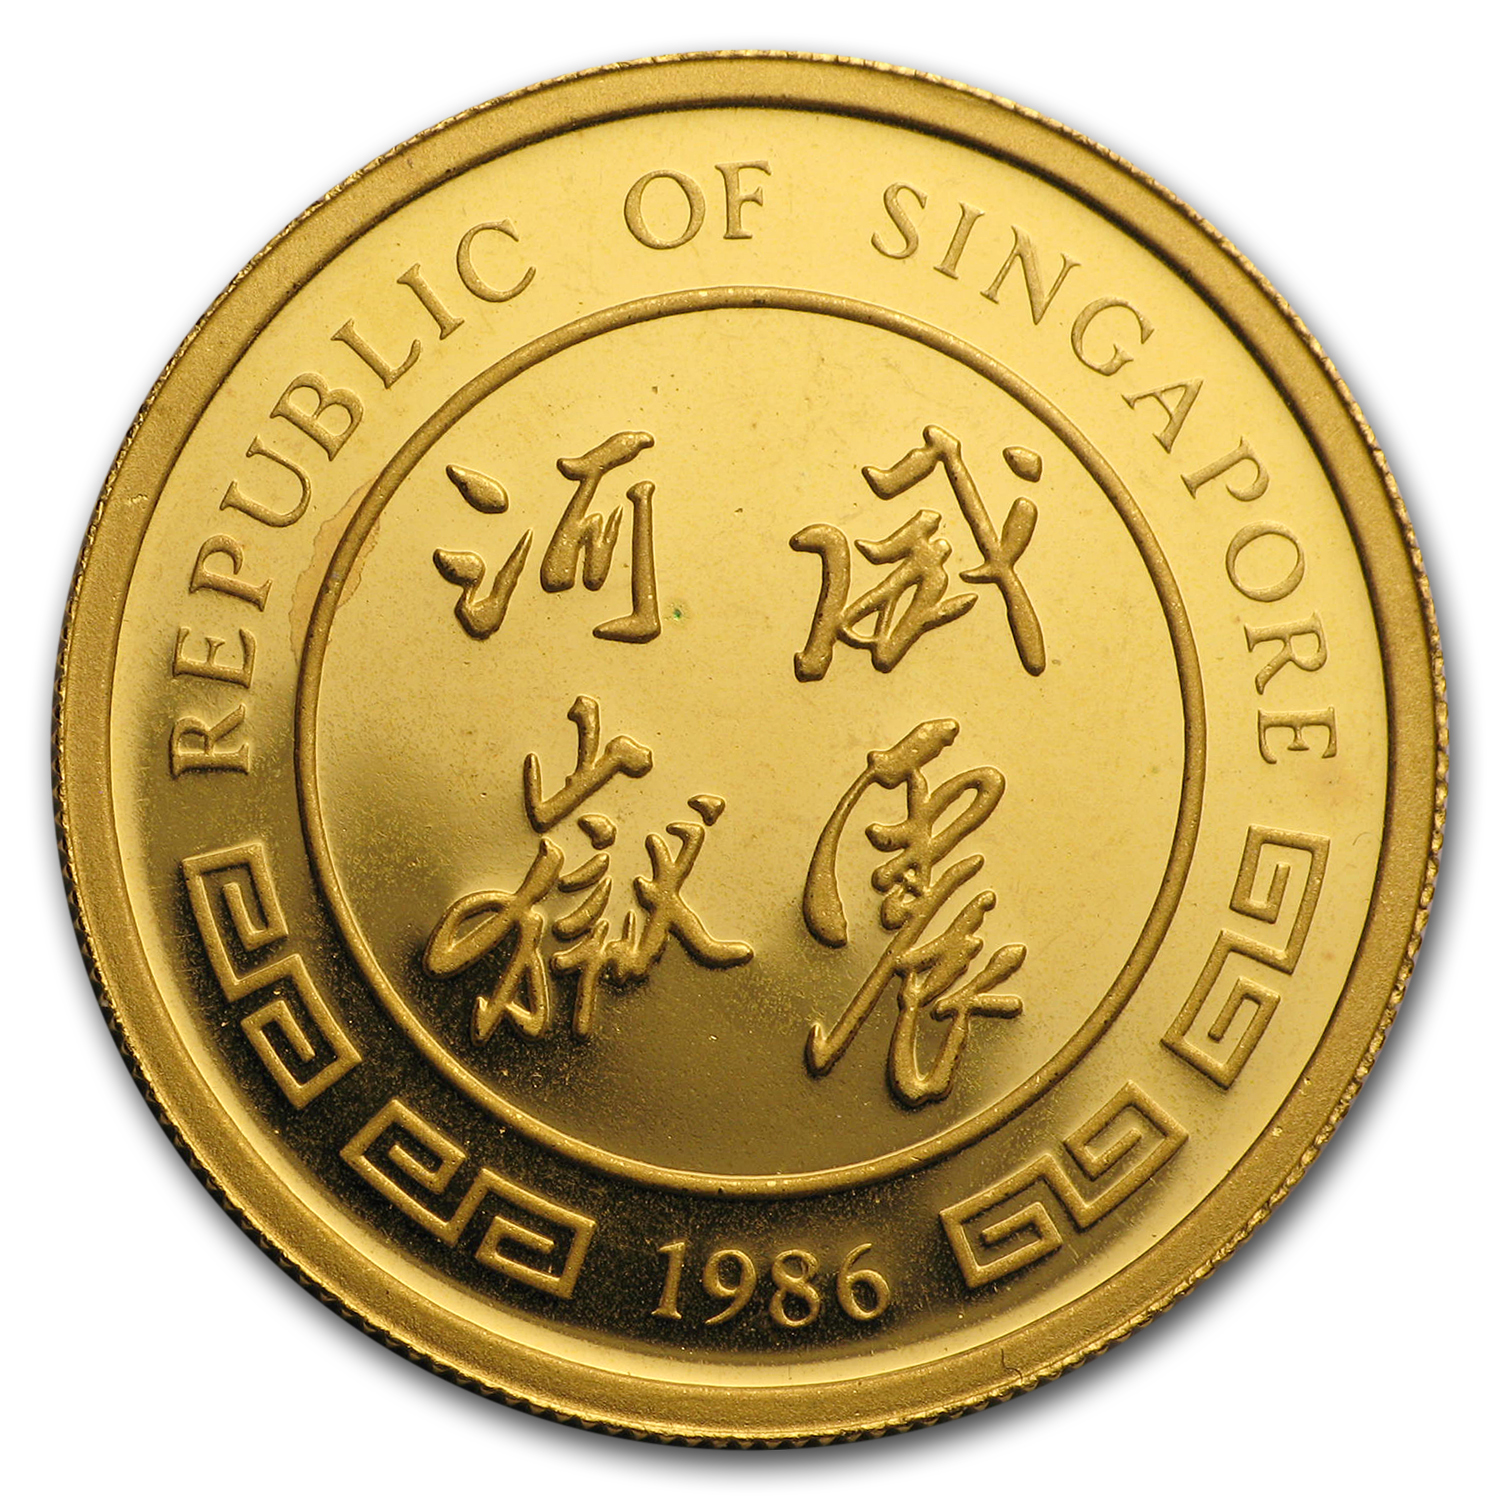 1986 Singapore 1/4 oz Proof Gold 25 Singold Tiger